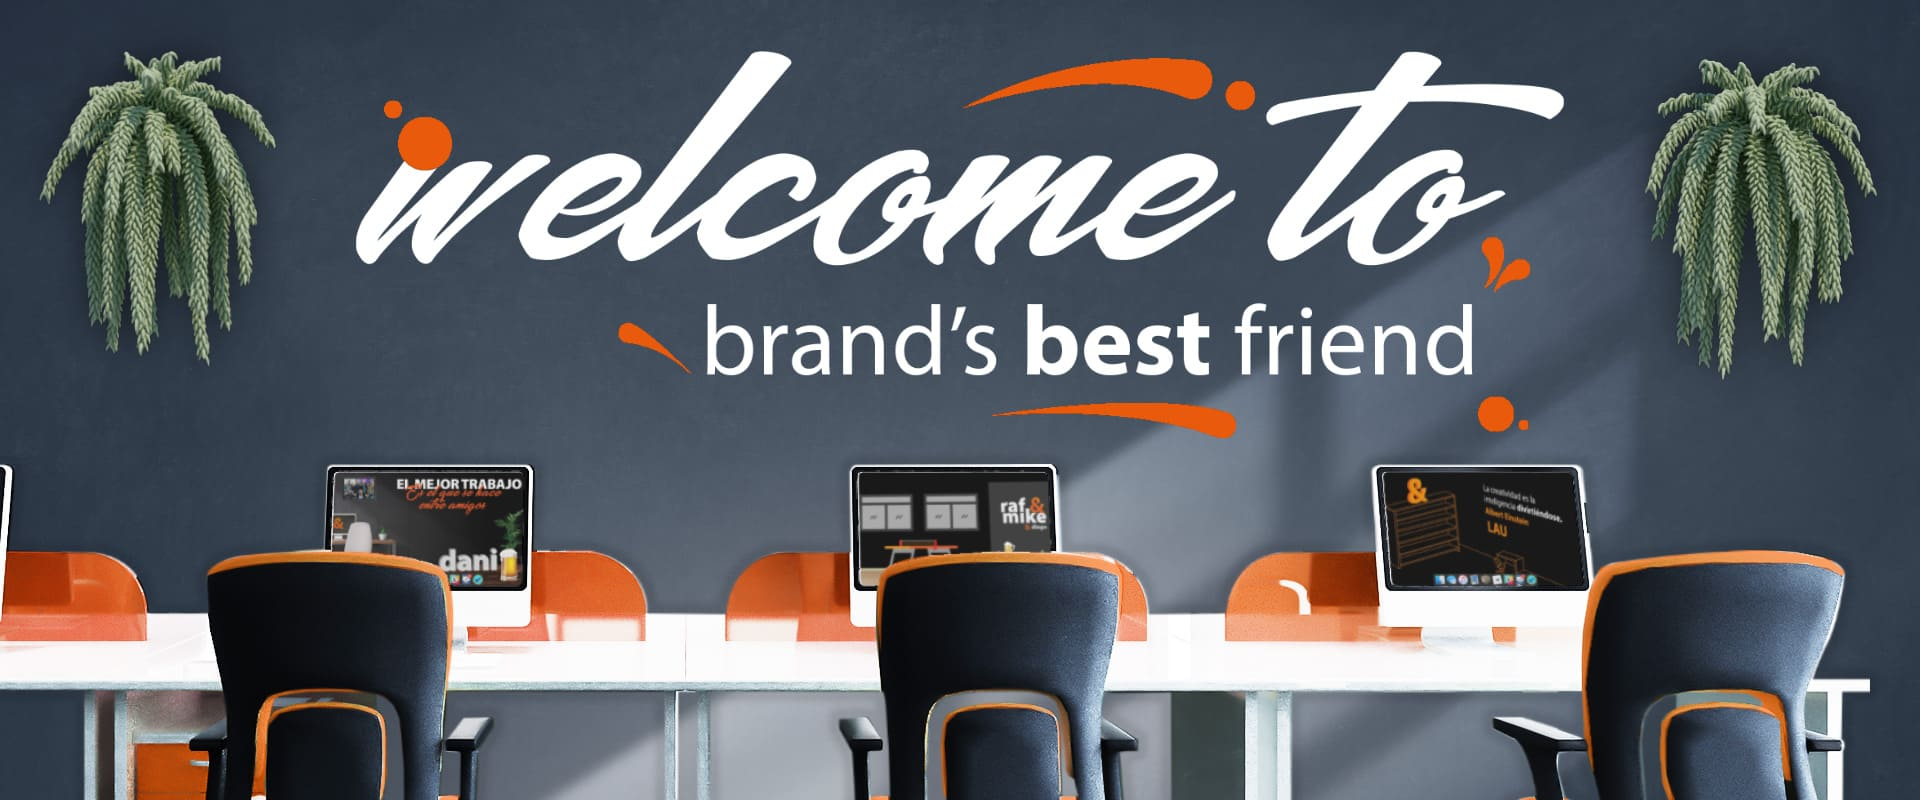 Welcom-to-brand's-best-friend-slide (1)